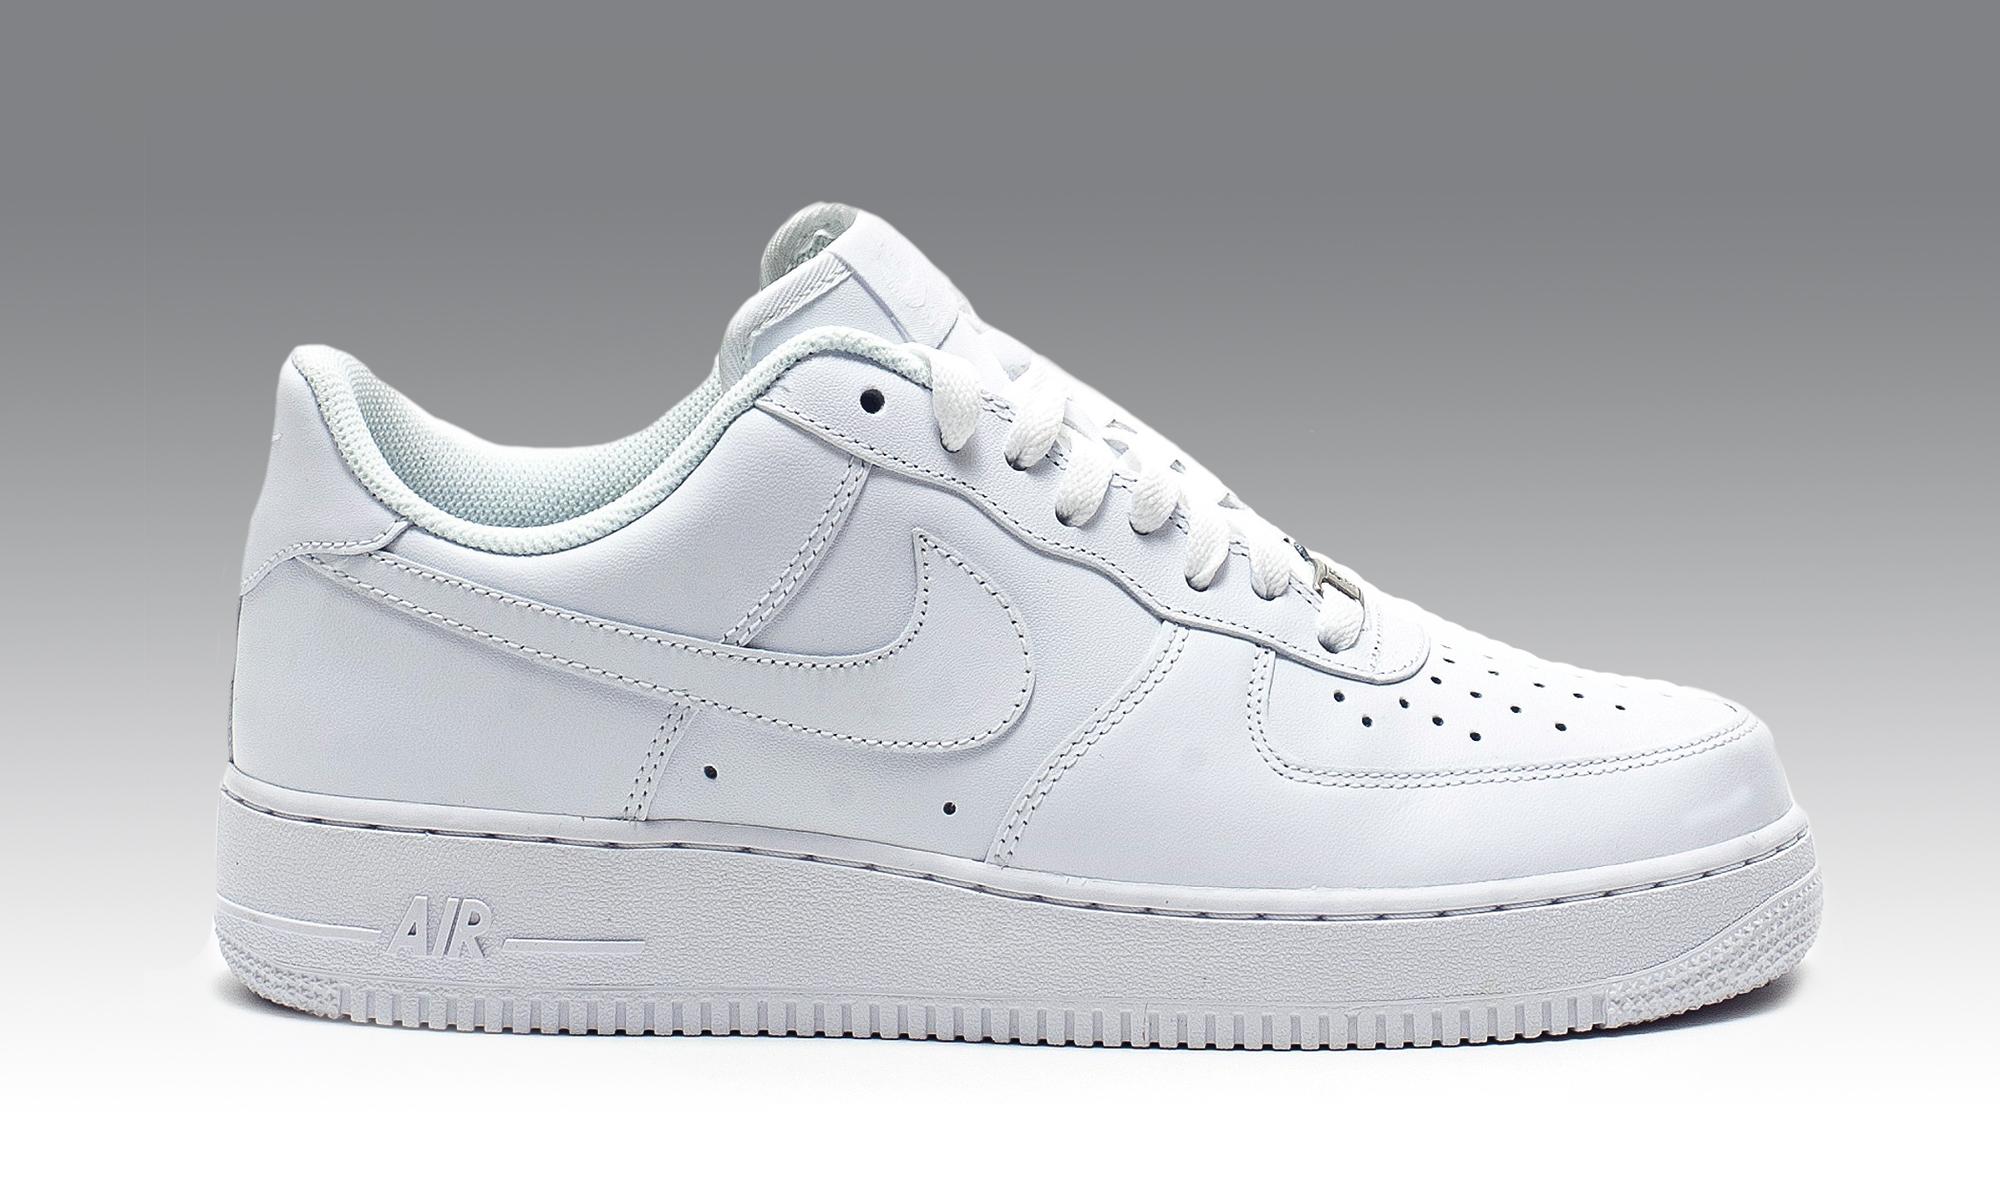 Nike-Air-Force-1-Low-White--White_Td4wt_1 (sara sjol's conflicted copy 2016-07-14).jpg